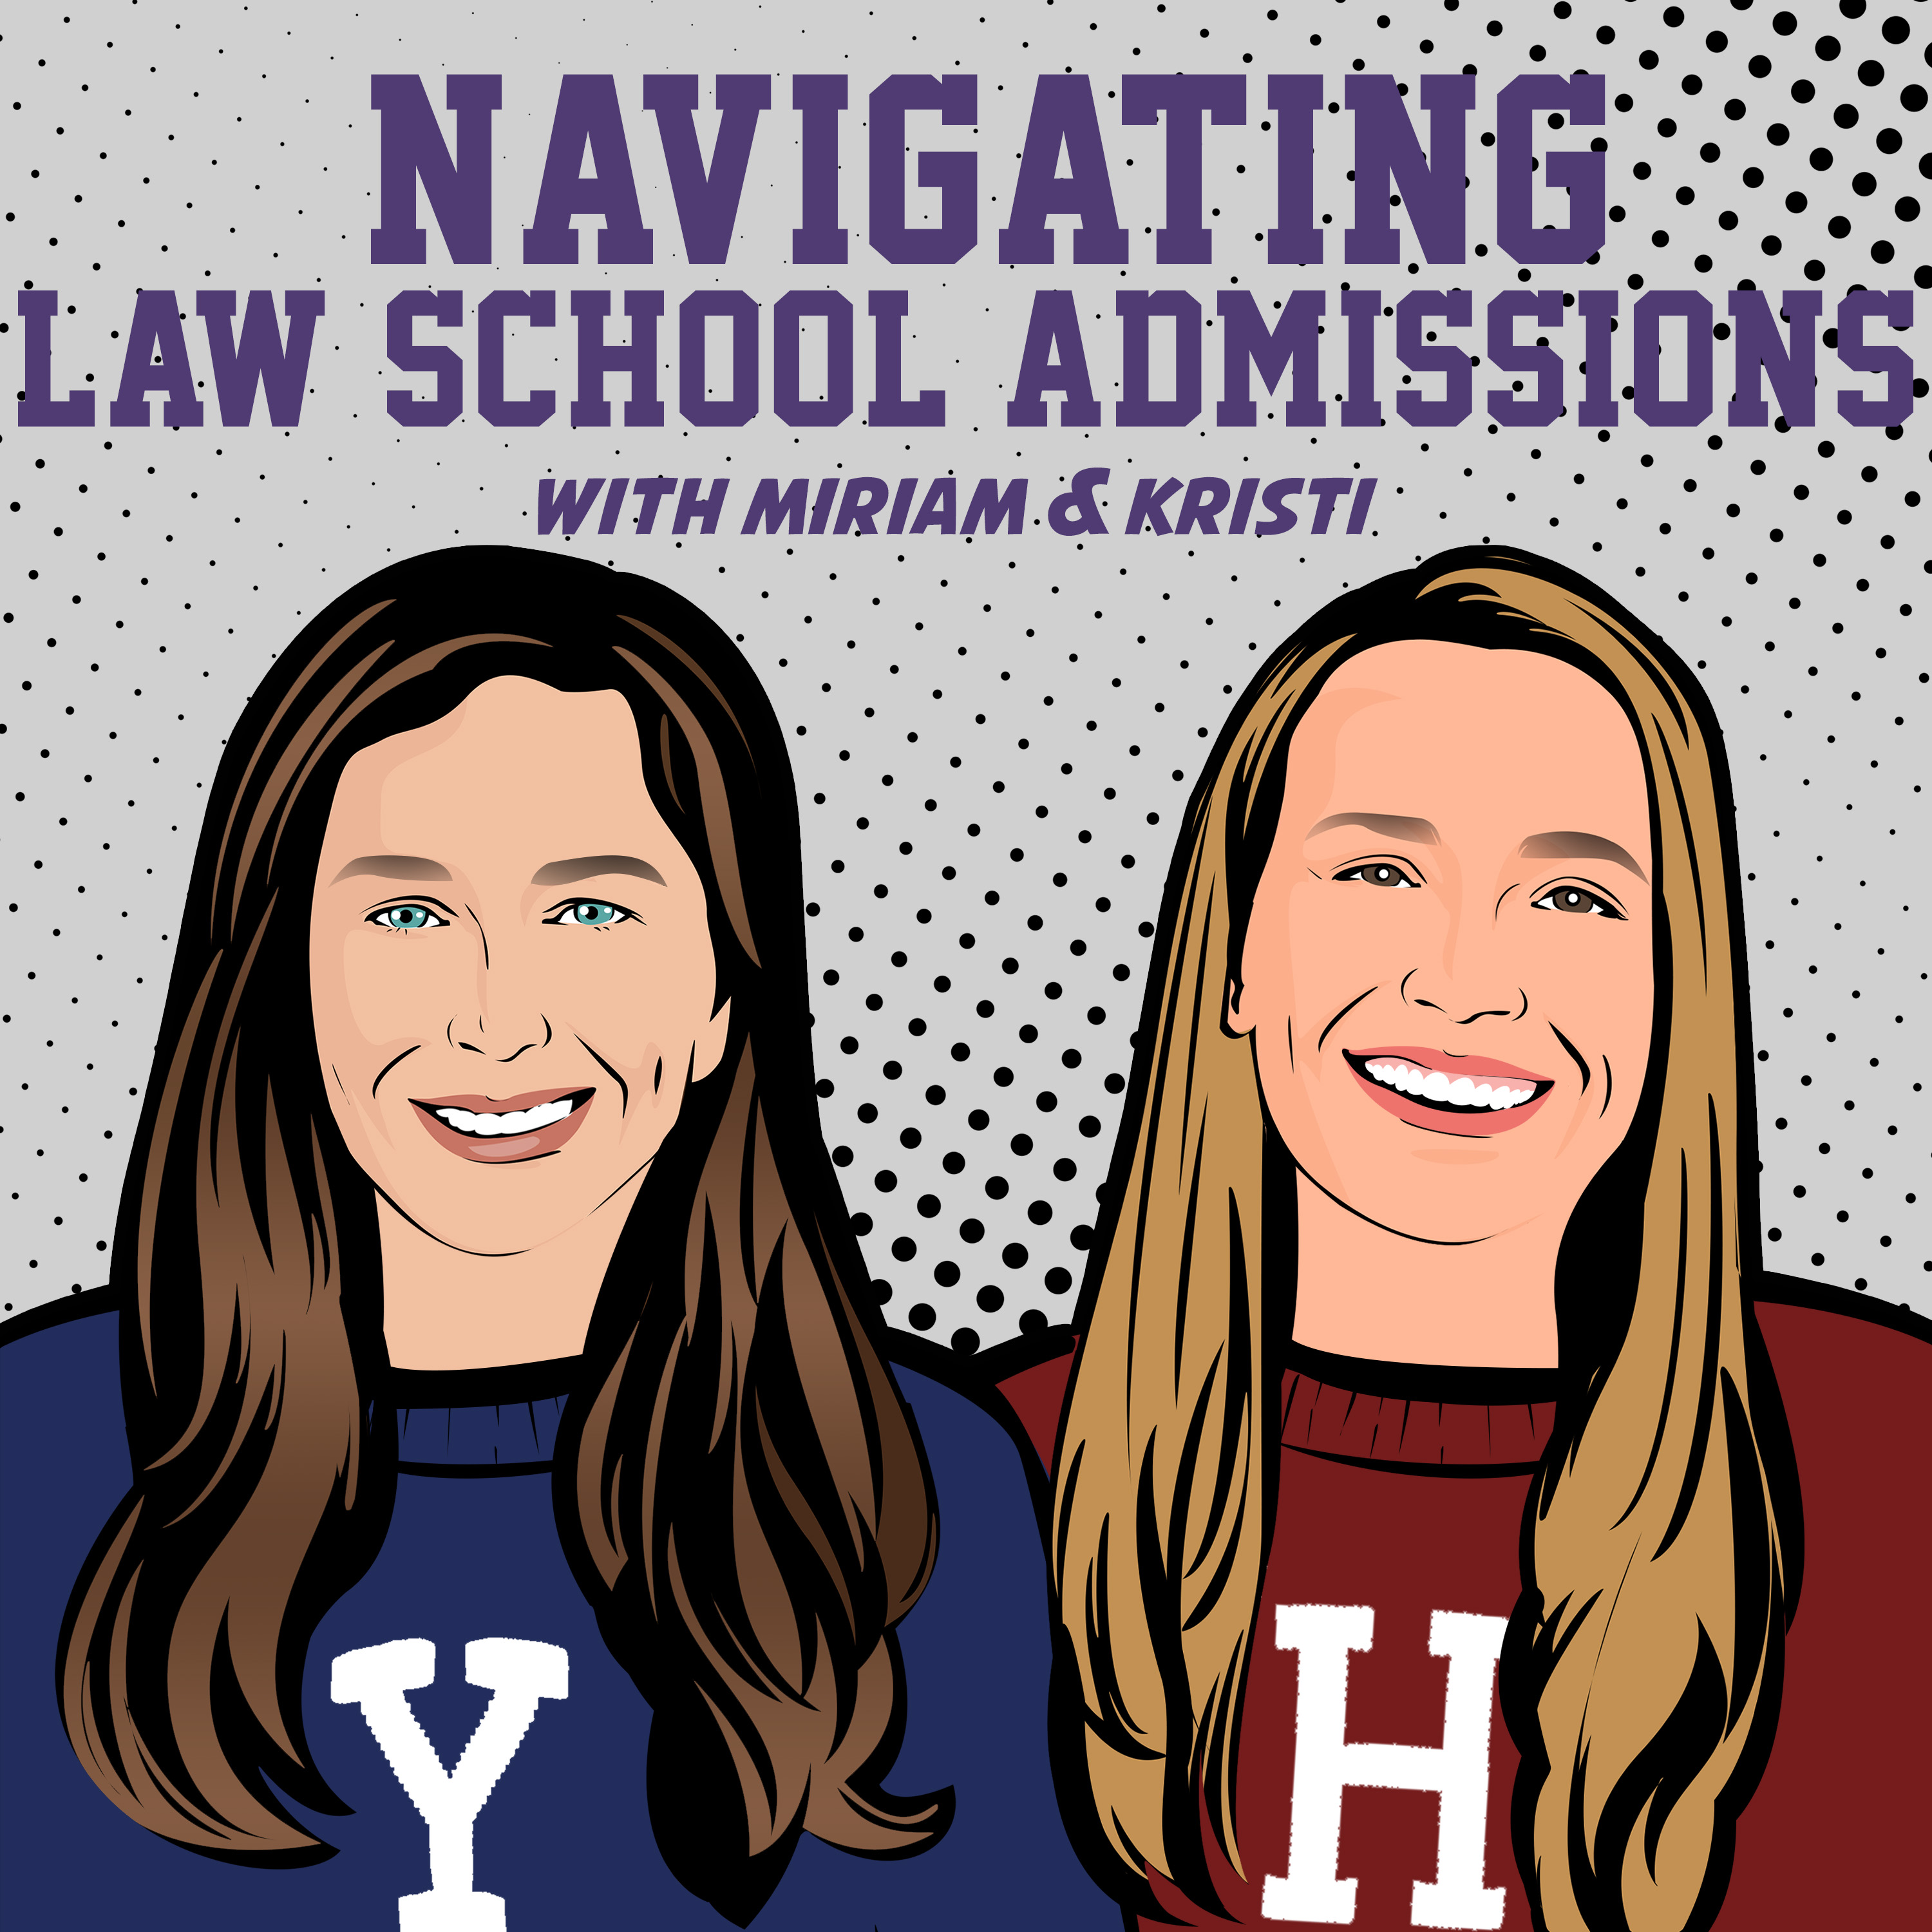 Navigating Law School Admissions with Miriam & Kristi